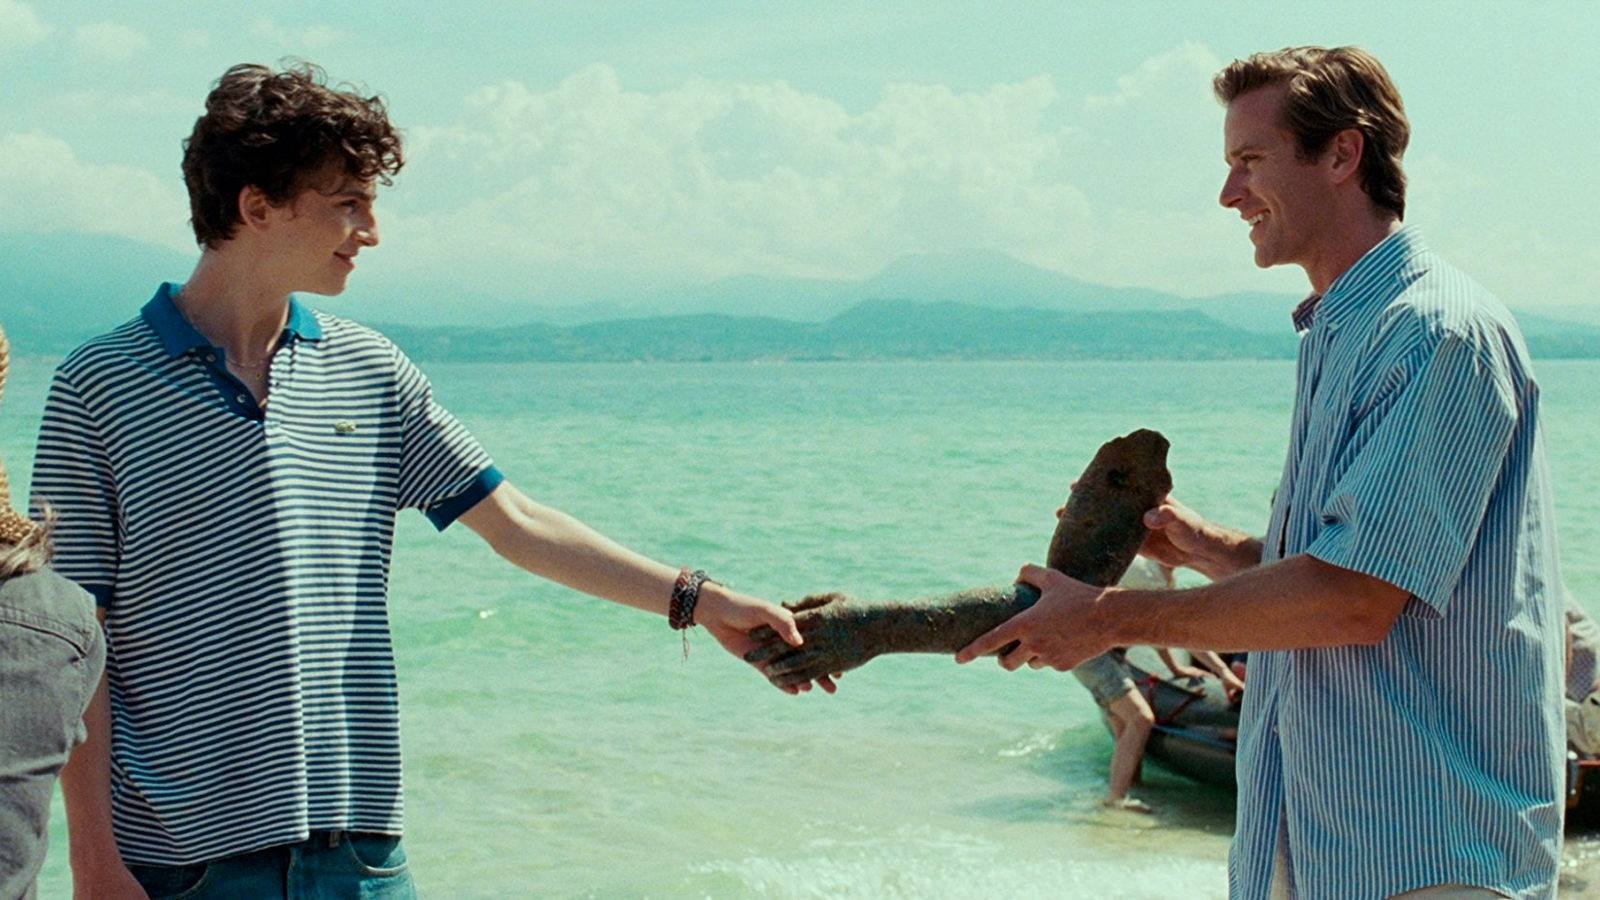 USF Call me by your name Regnbuedagene Verftet Bergen film